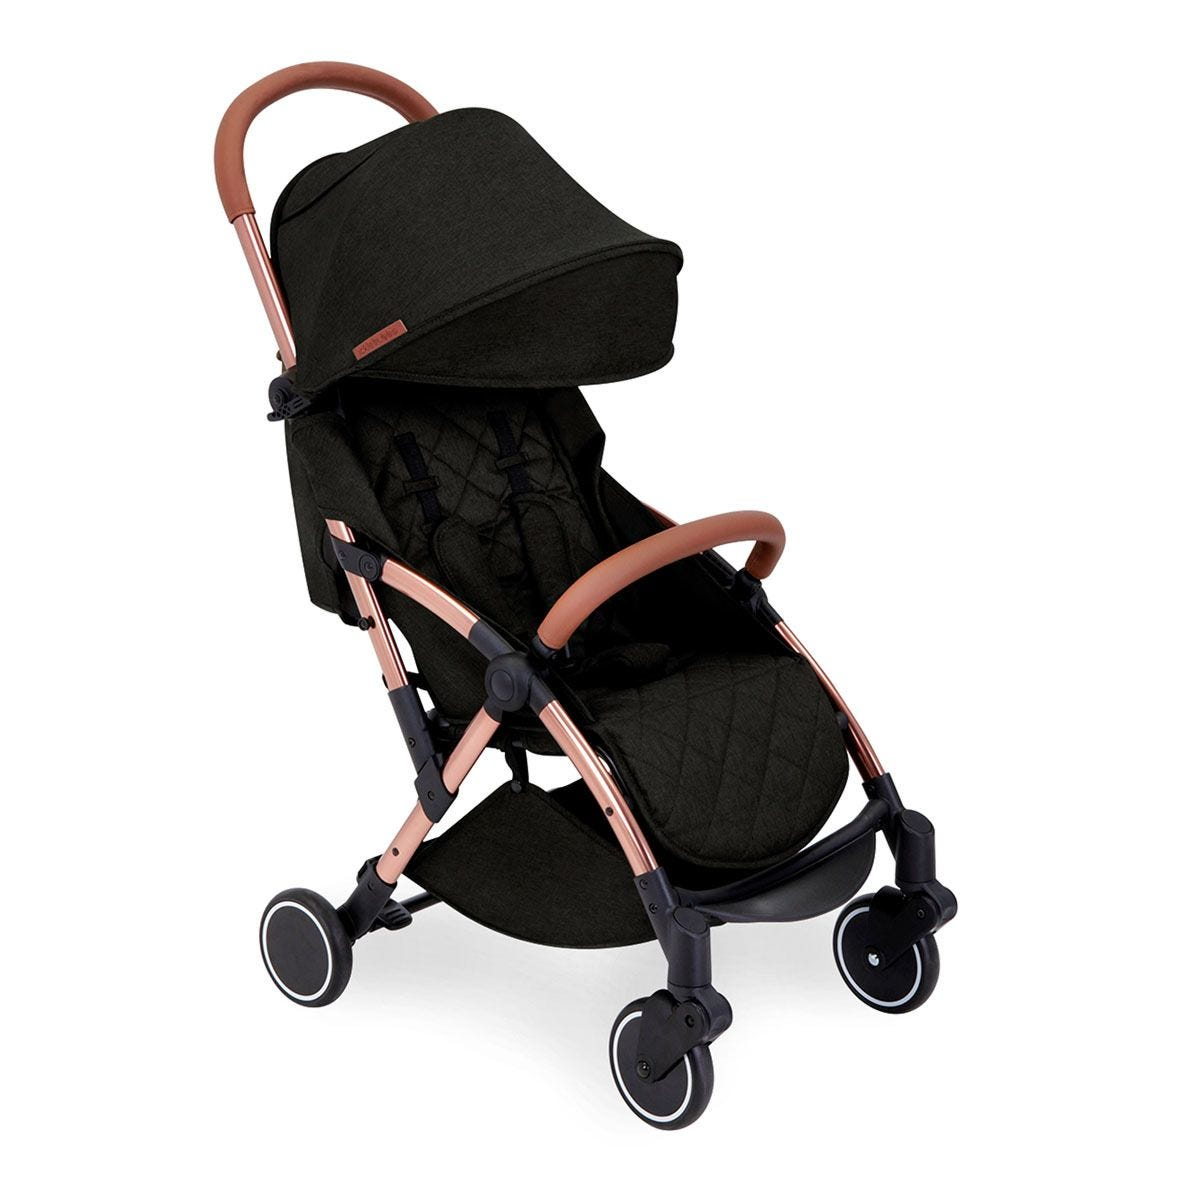 Ickle Bubba Globe Stroller - Black on Rose Gold